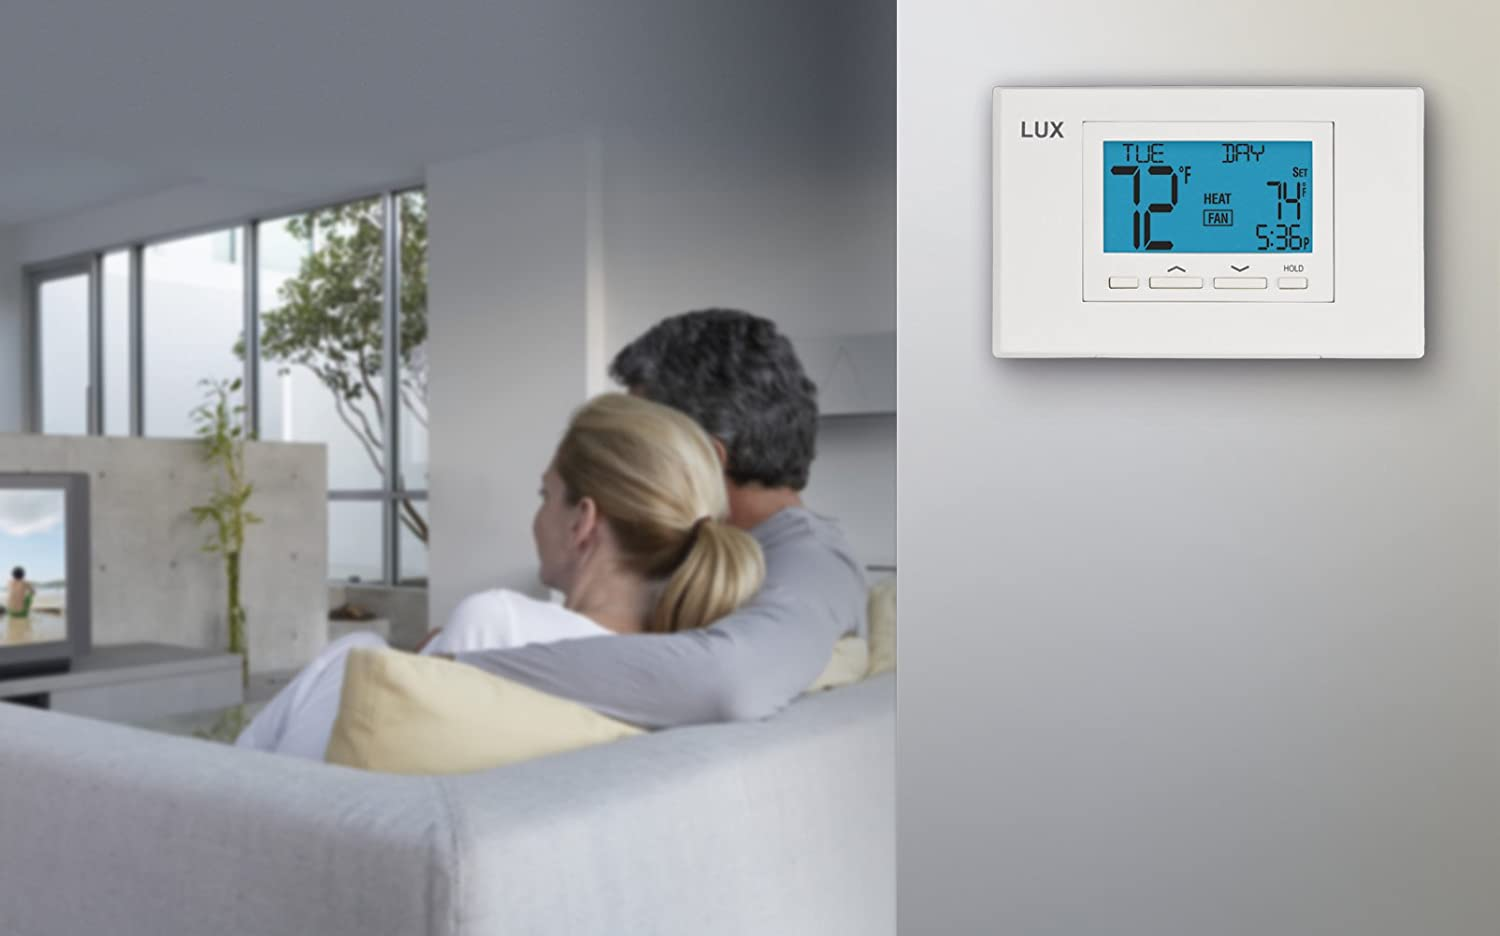 610TvHBhUfL._SL1500_ lux products tx1500u universal 5 1 1 programmable thermostat  at soozxer.org